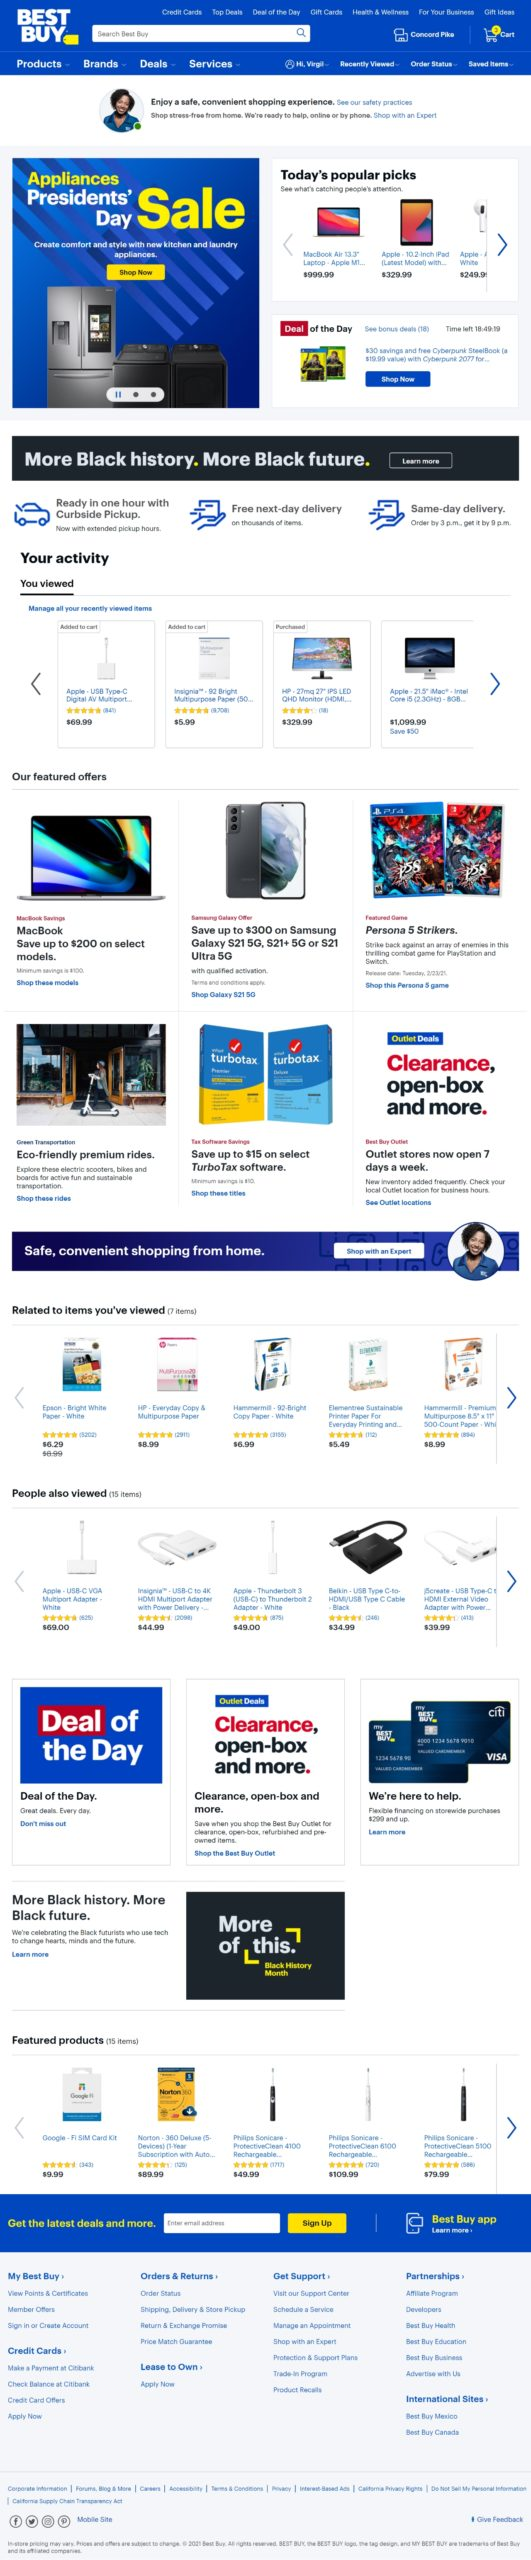 Best Buy Home Page>